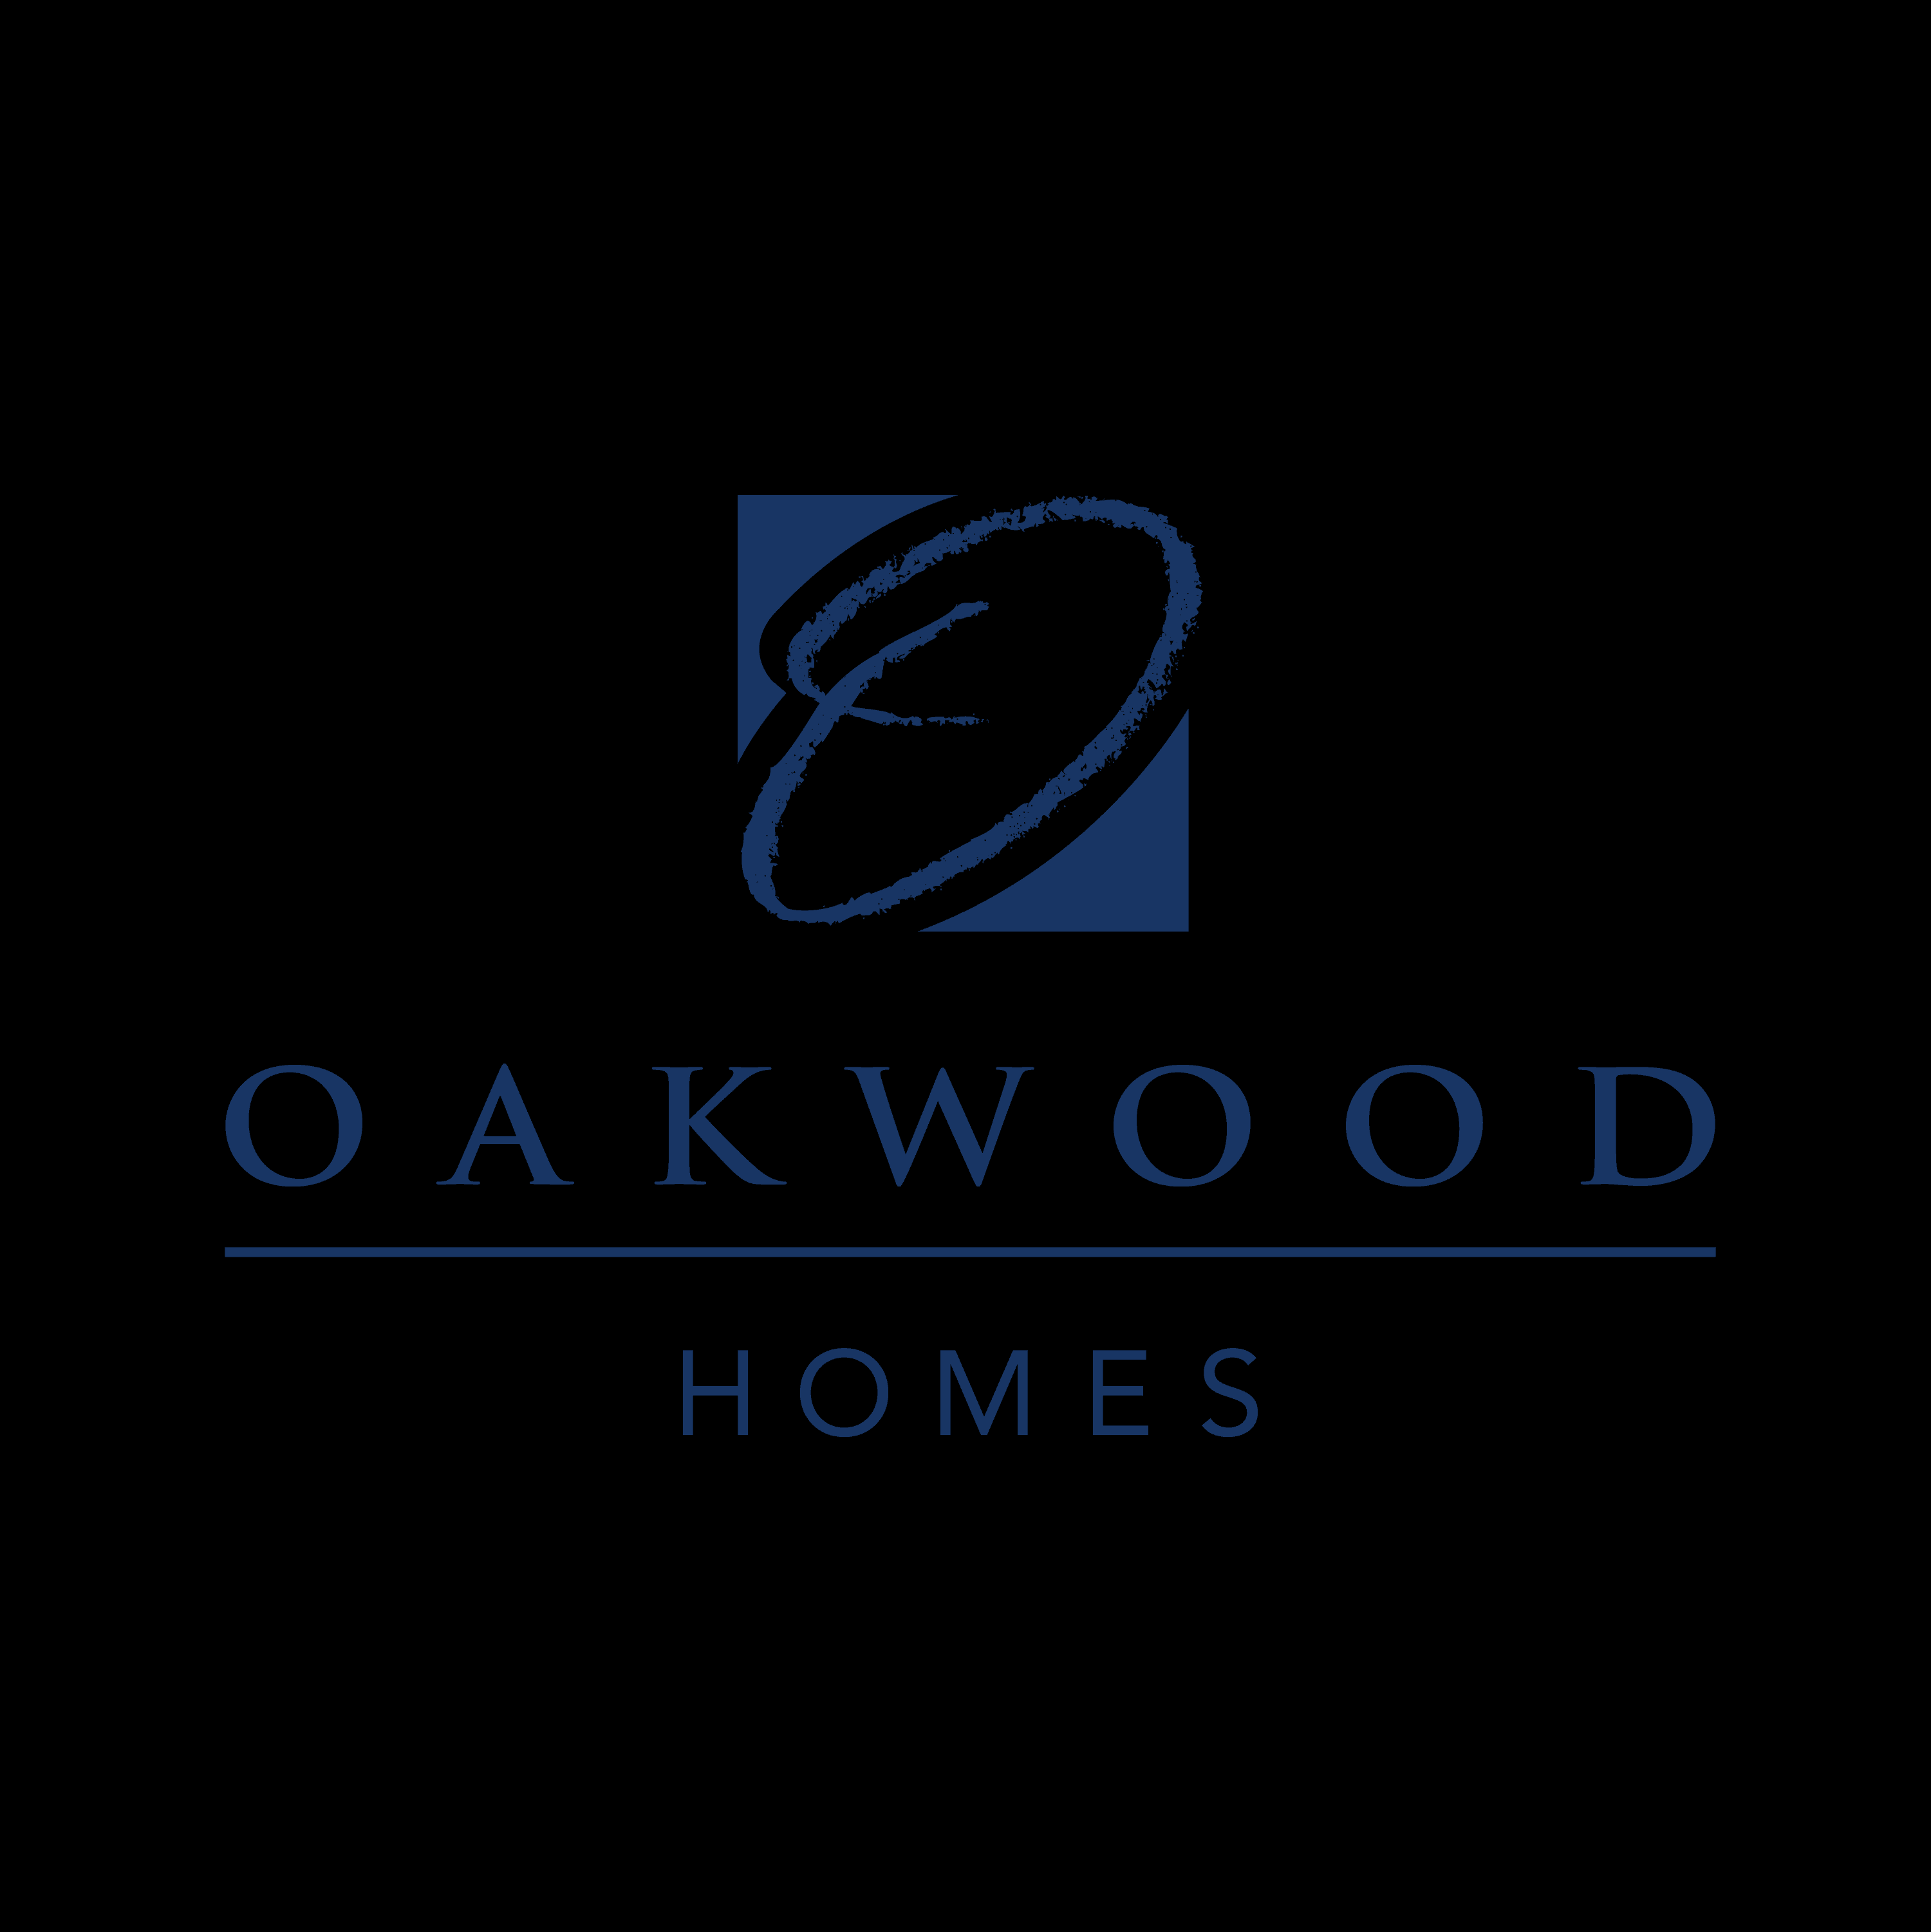 'Banning Lewis Ranch' by Oakwood Homes - Colorado Springs in Colorado Springs